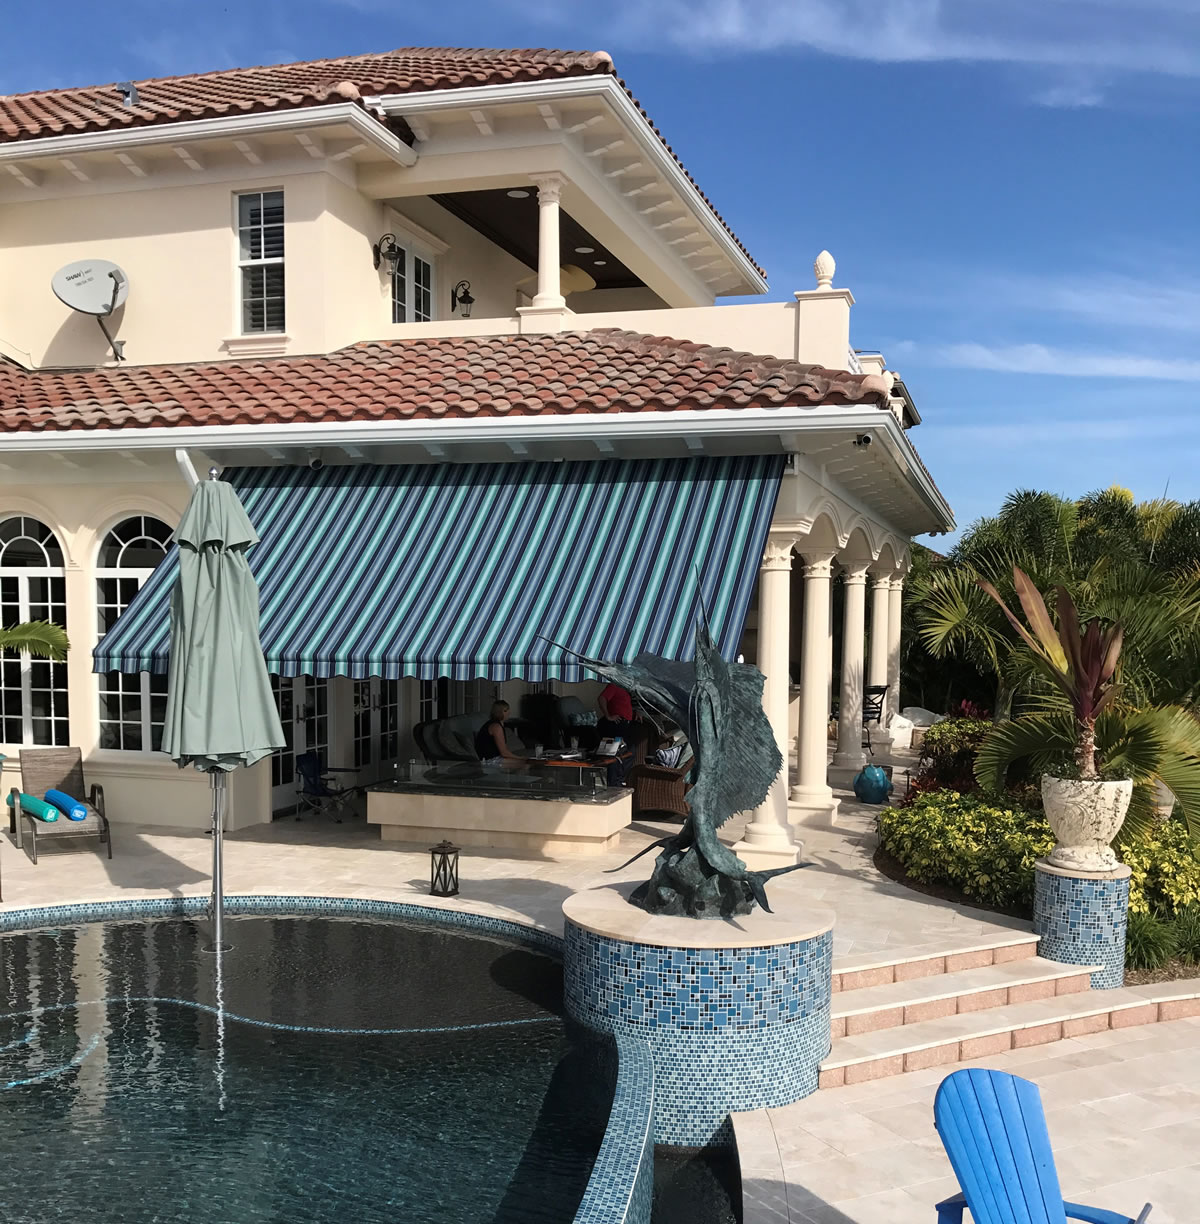 030 Awnings Archives - St. Lucie, Martin & Broward County